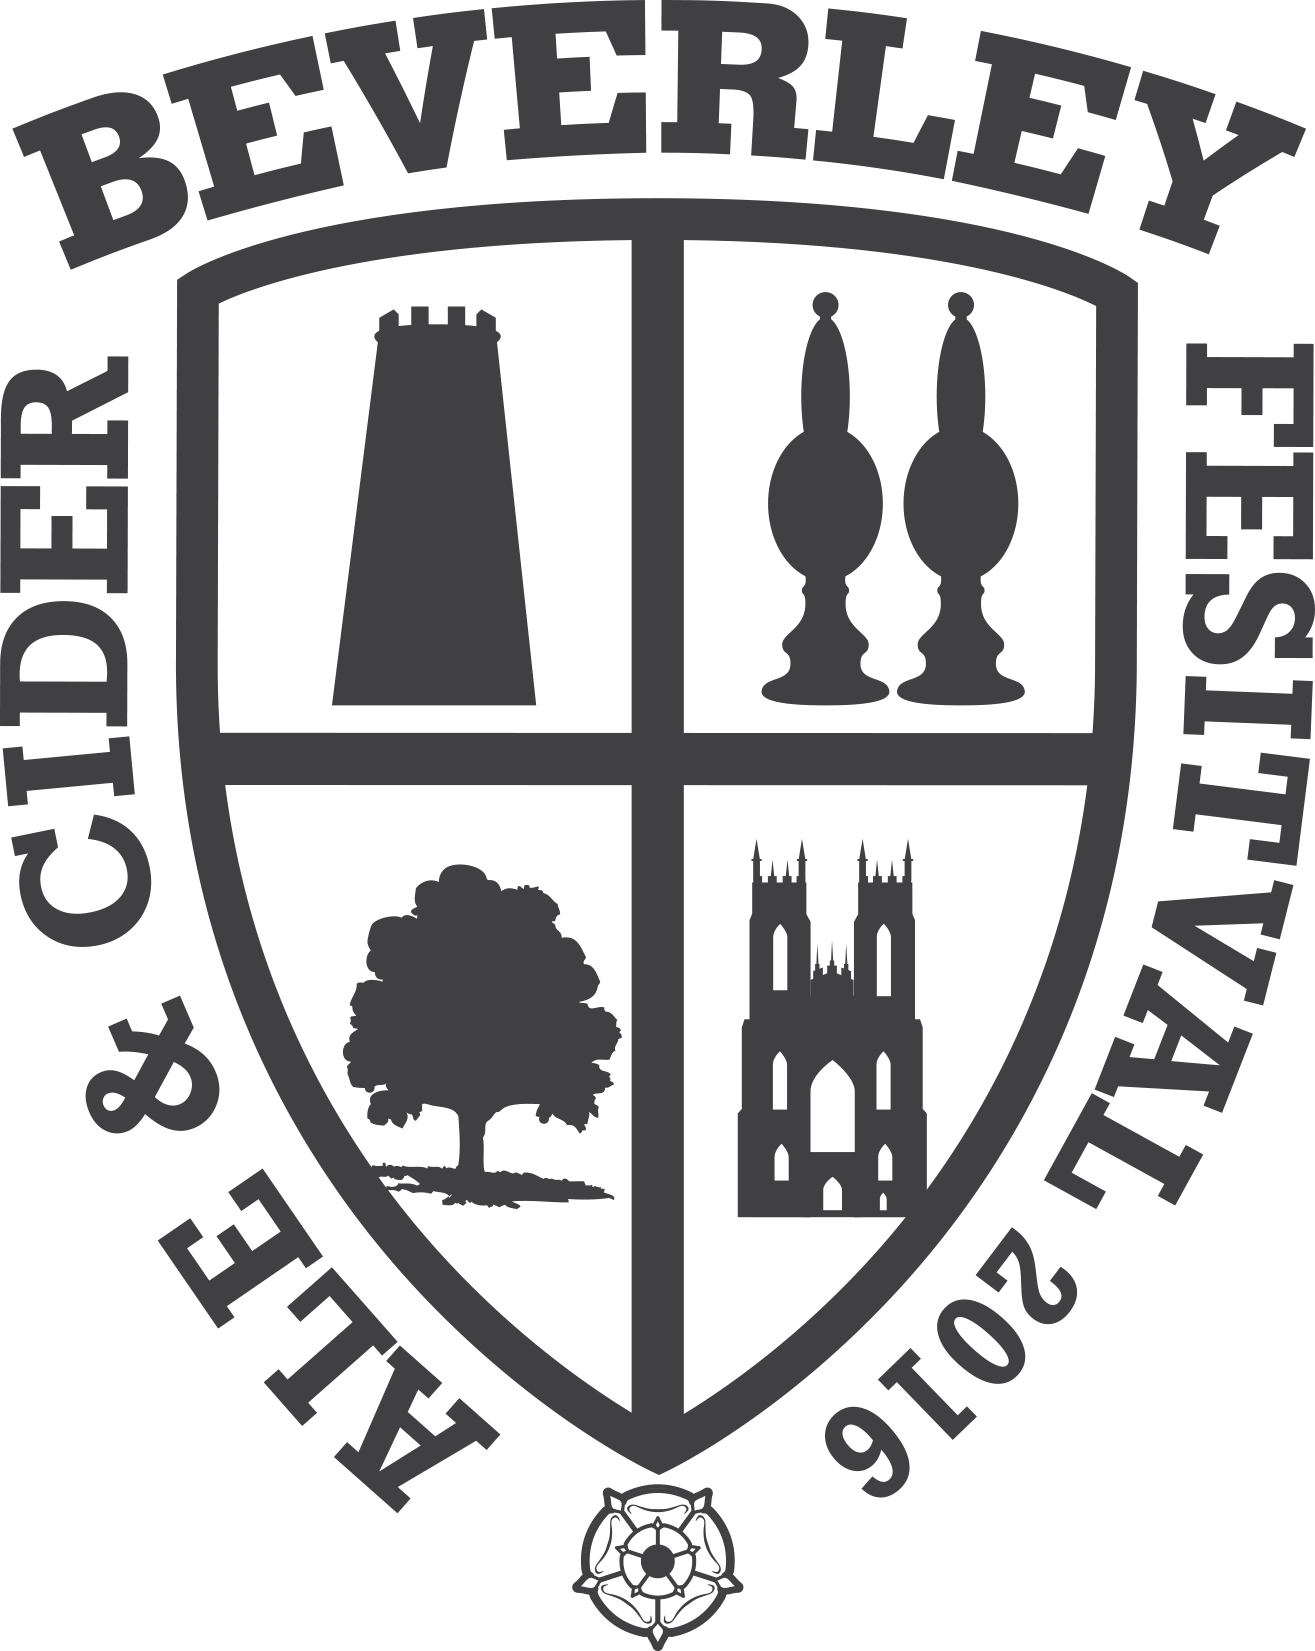 Beverley Beer and Cider Festival